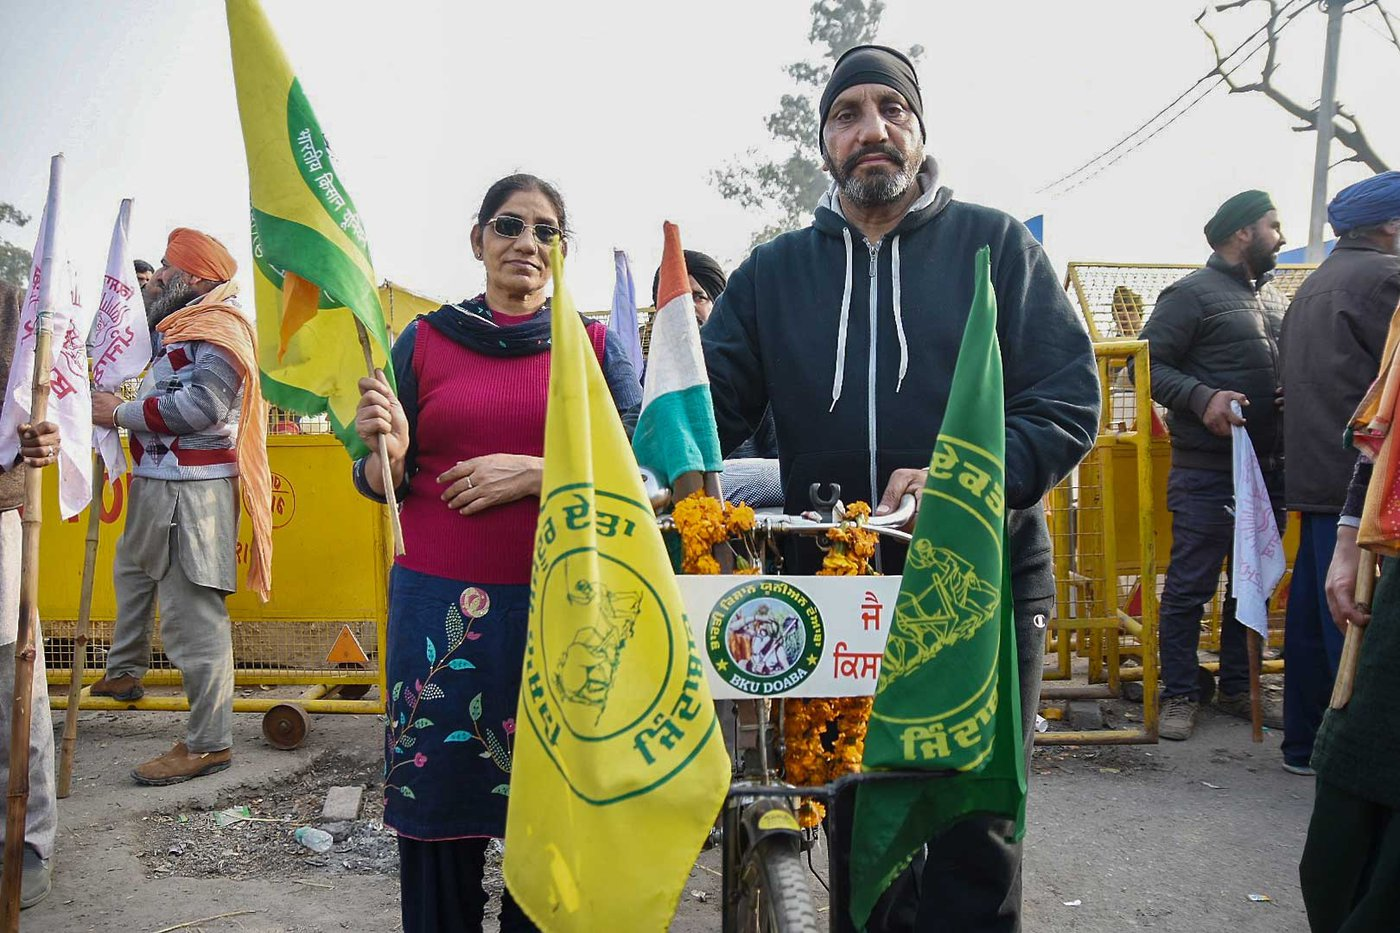 Ramesh Kumar cycled from Punjab's Hoshiarpur to the farmers' protest site in Singhu to participate in the Republic Day farmers' parade on January 26